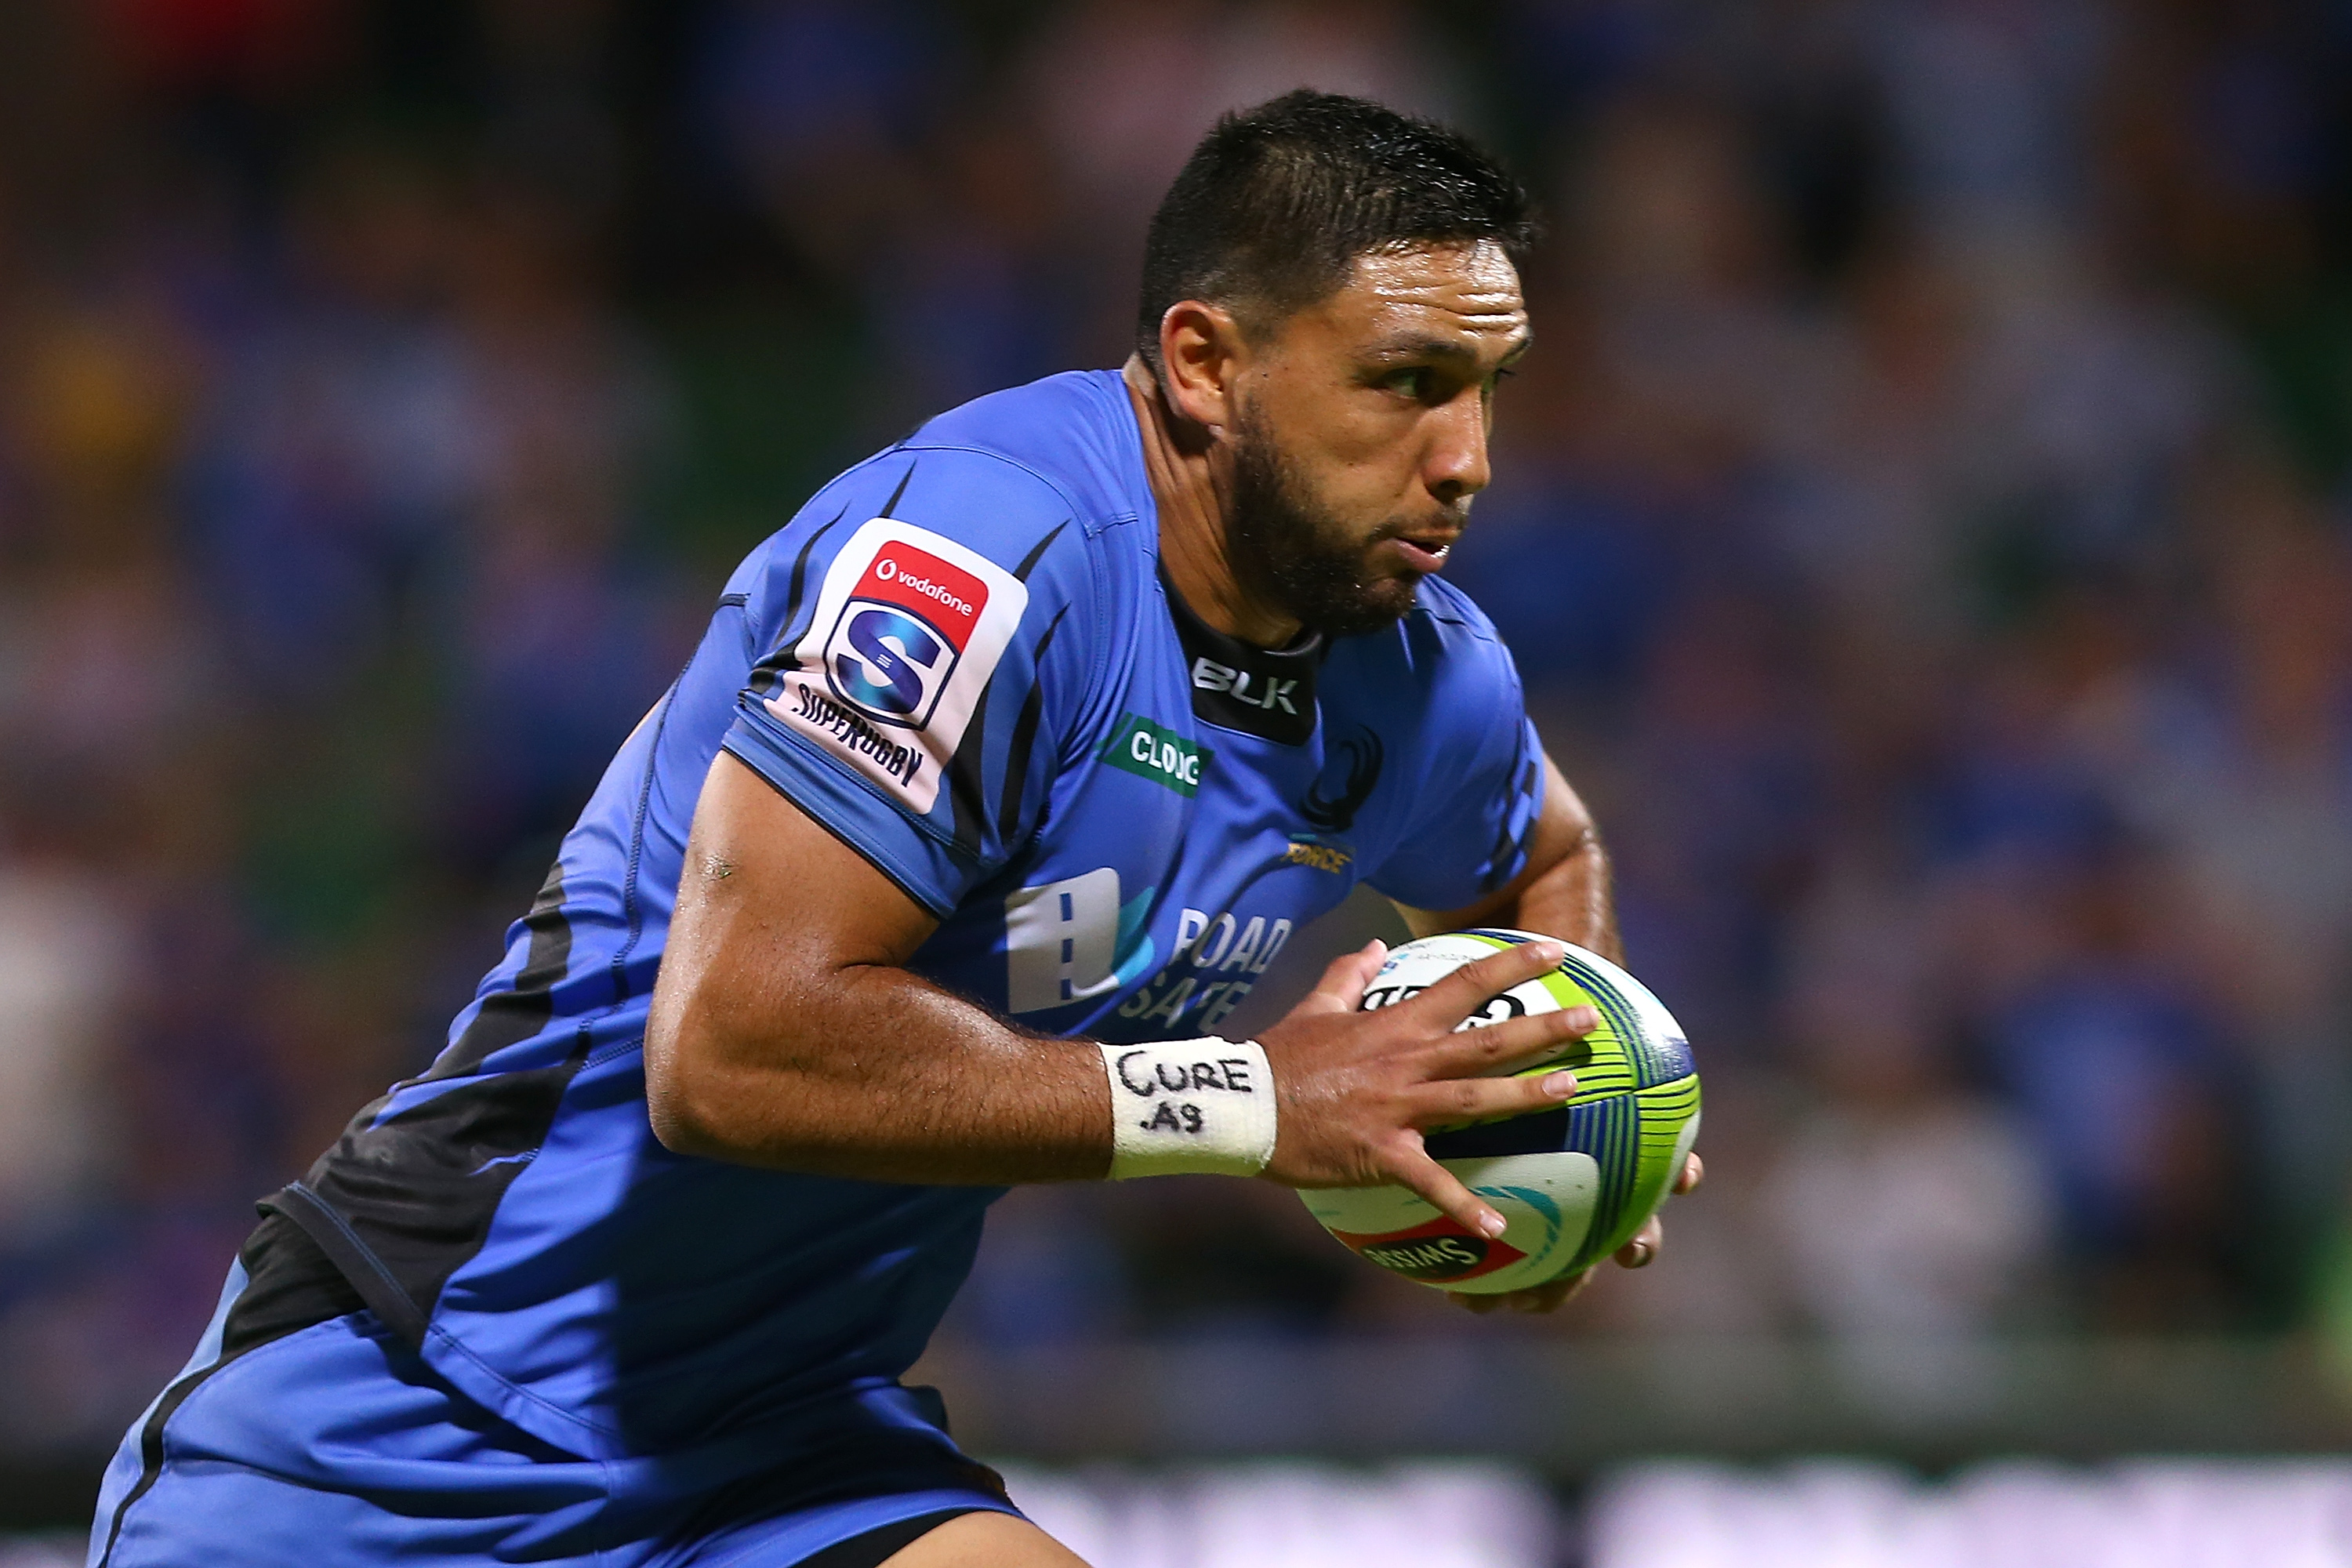 Curtis Rona in action for the Western Force. Photo: Getty